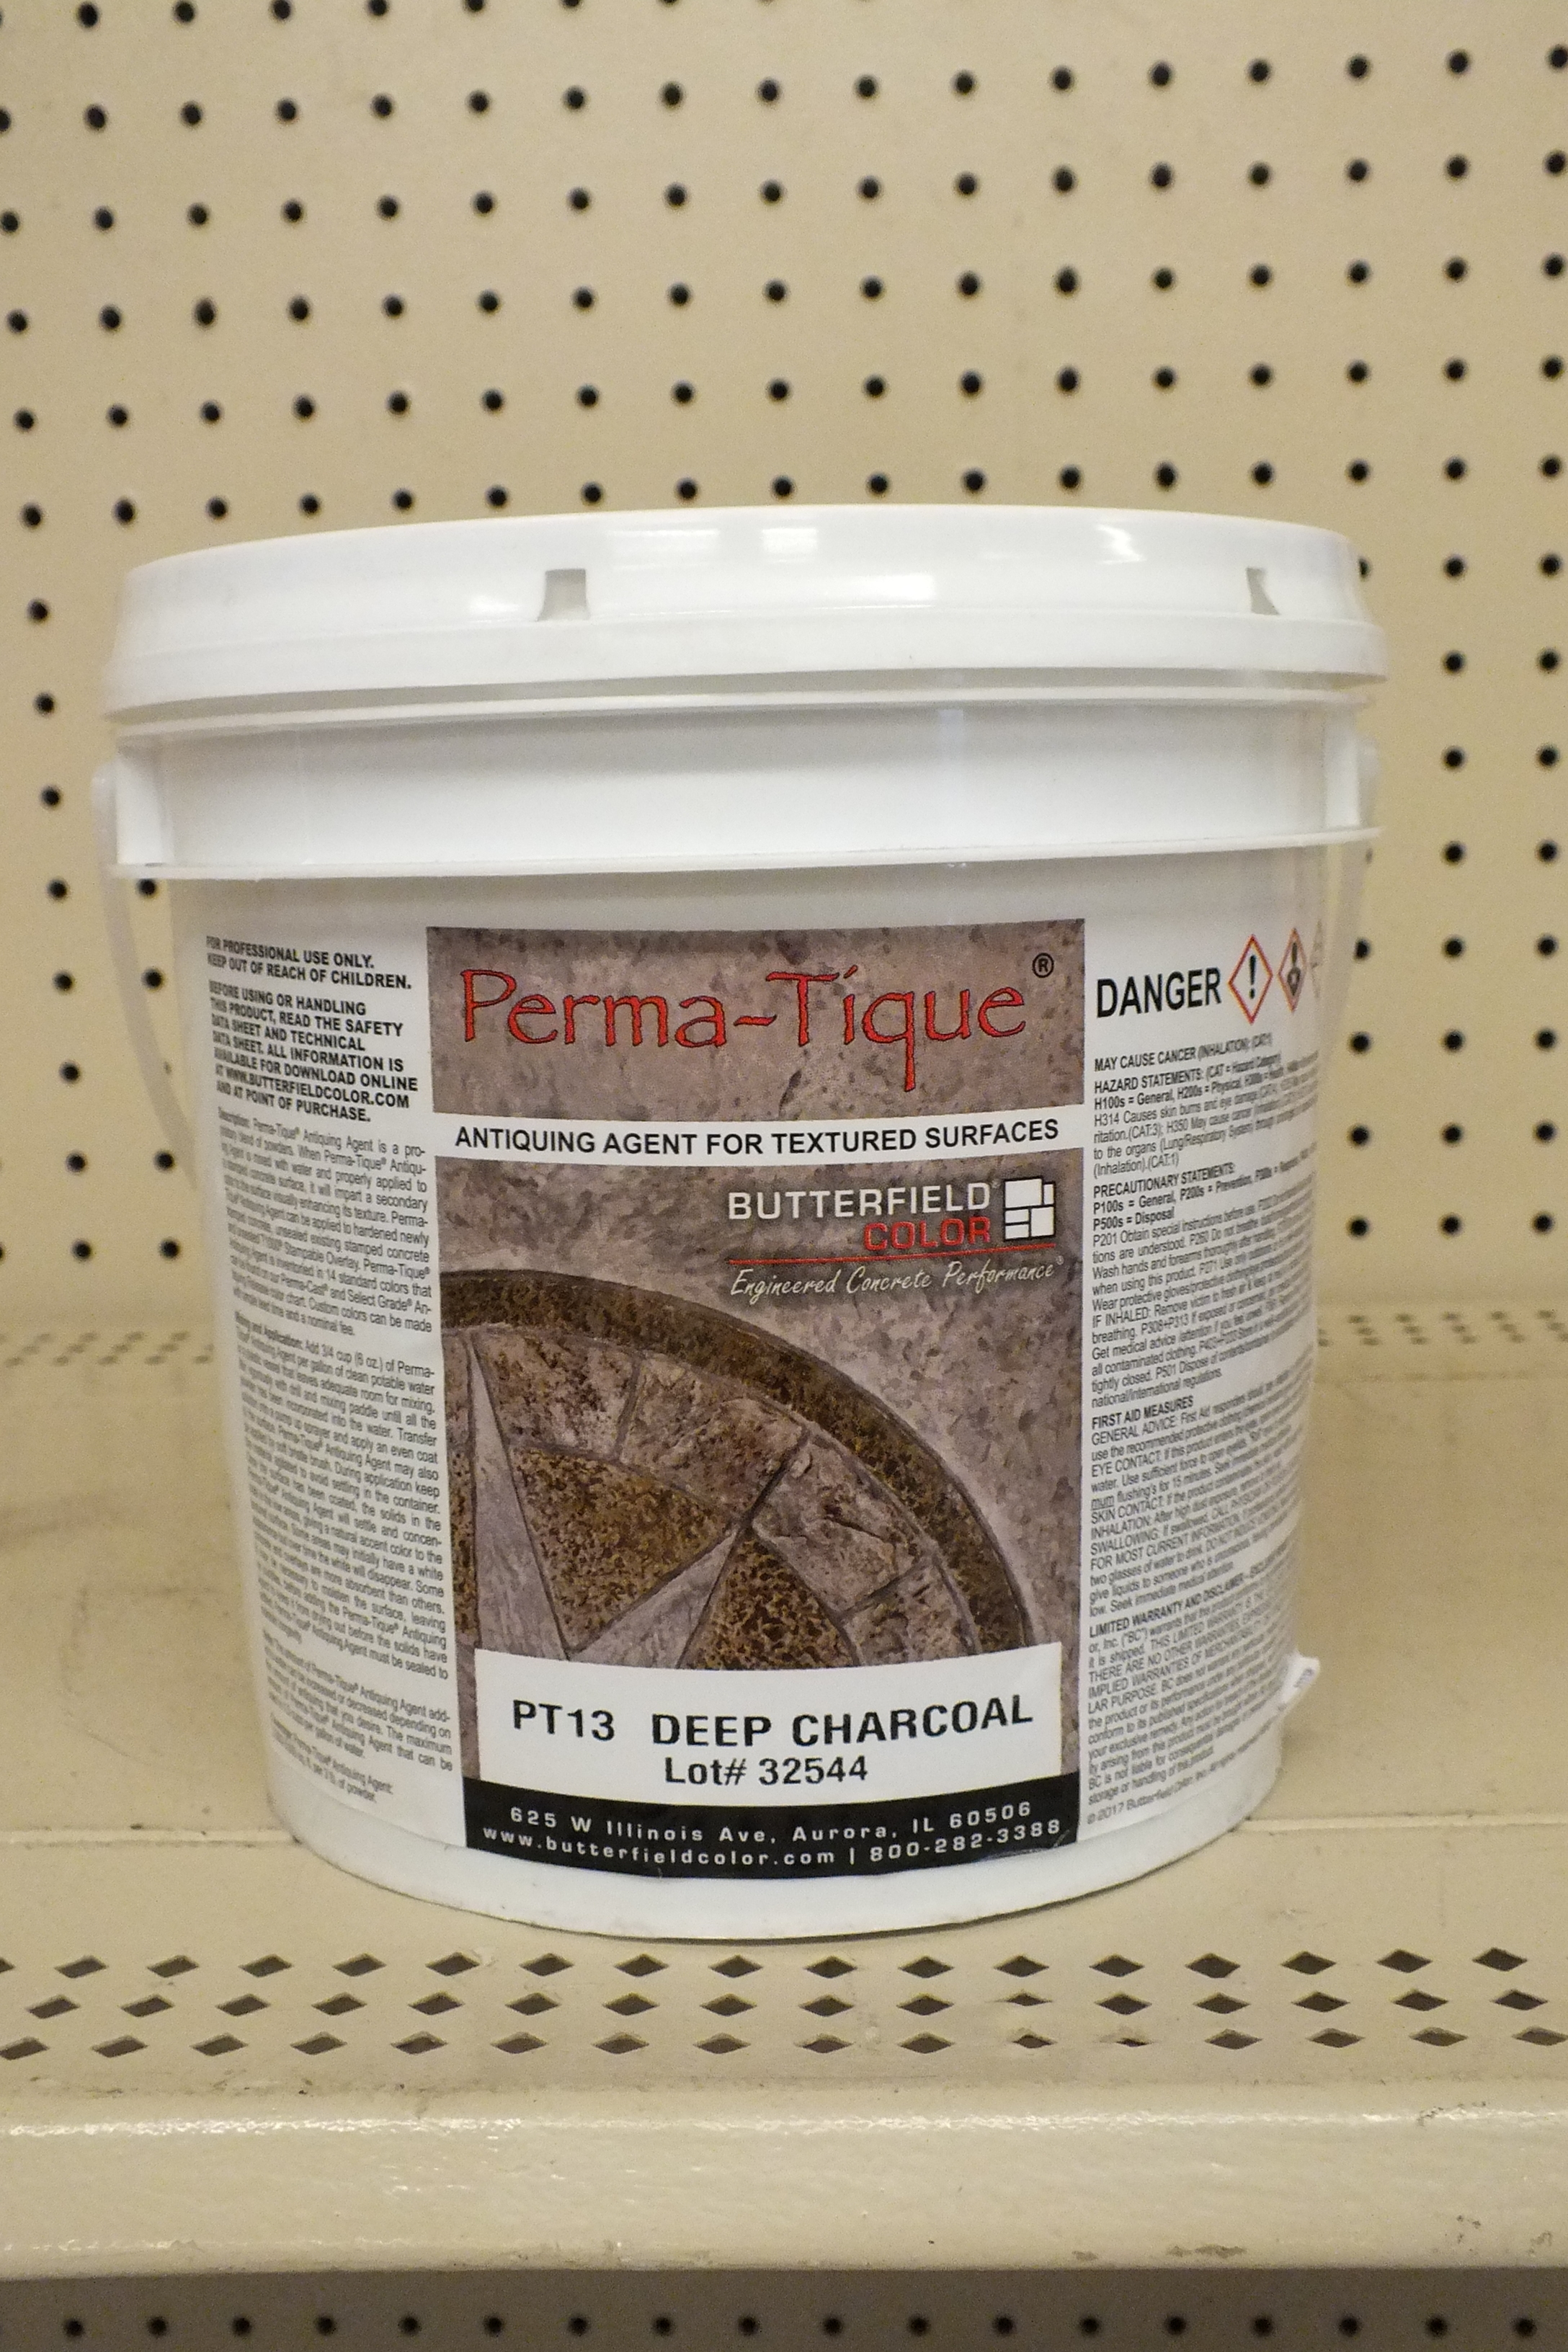 Butterfield Perma-Tique - Antiquing agent for textured surfaces